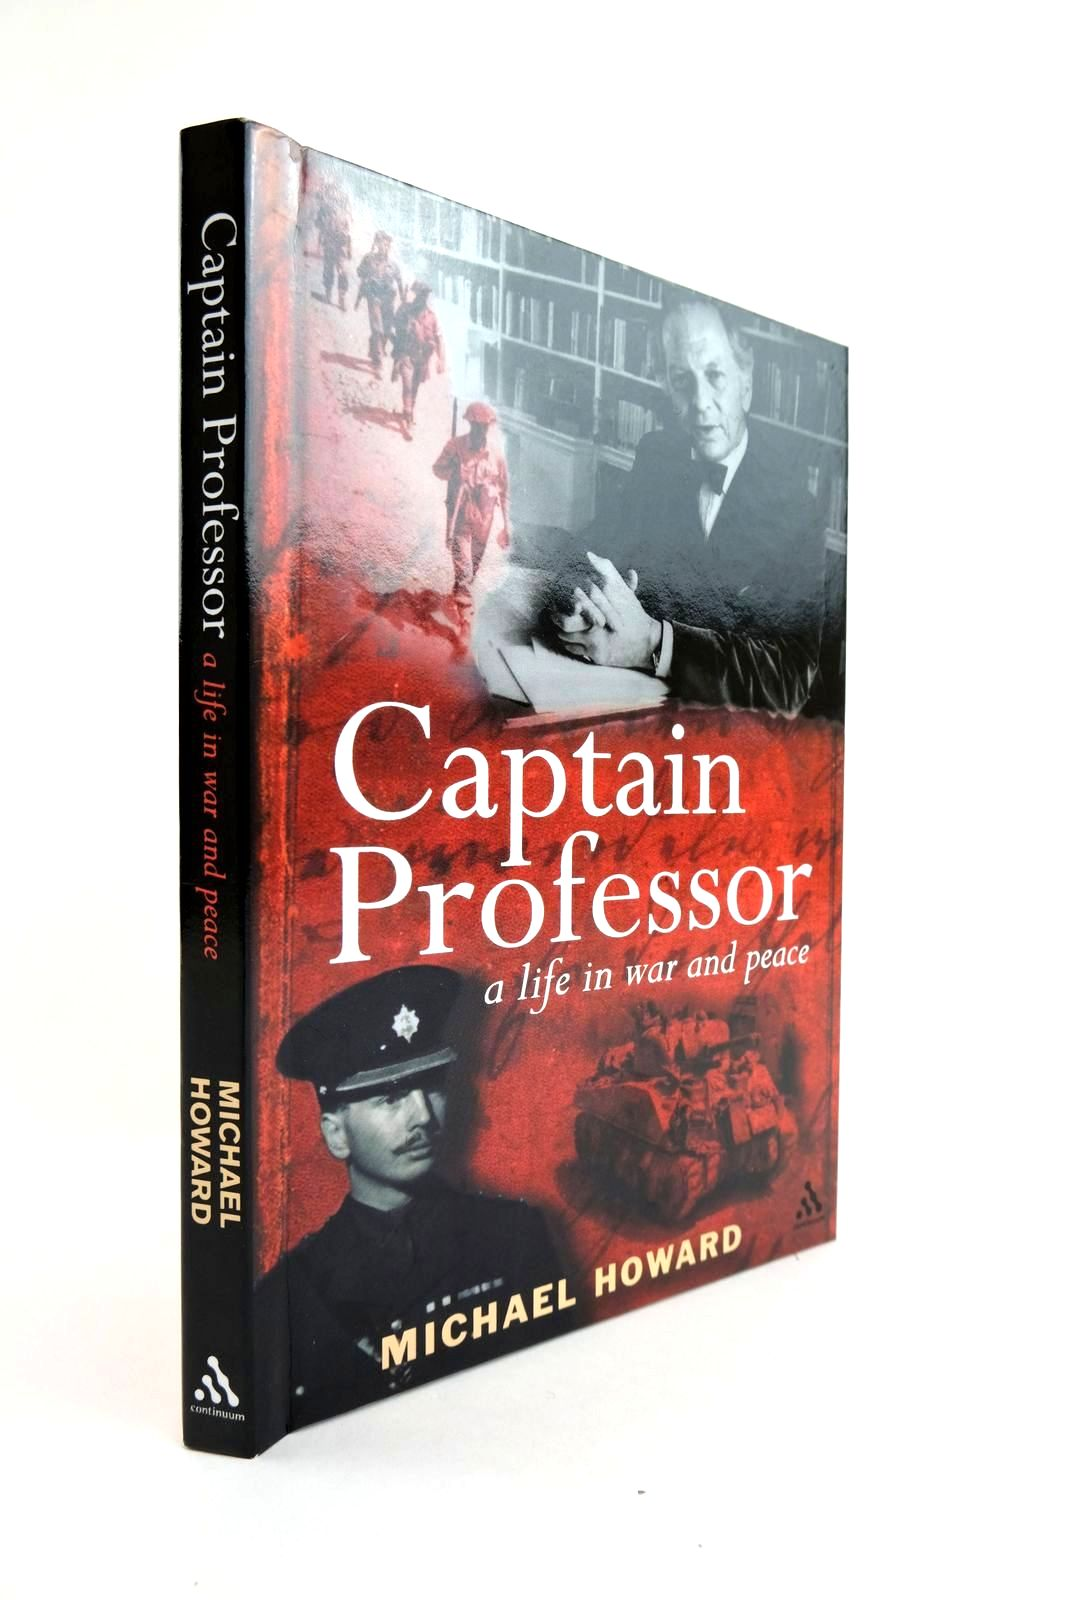 Photo of CAPTAIN PROFESSOR A LIFE IN WAR AND PEACE written by Howard, Michael published by Continuum (STOCK CODE: 2133423)  for sale by Stella & Rose's Books